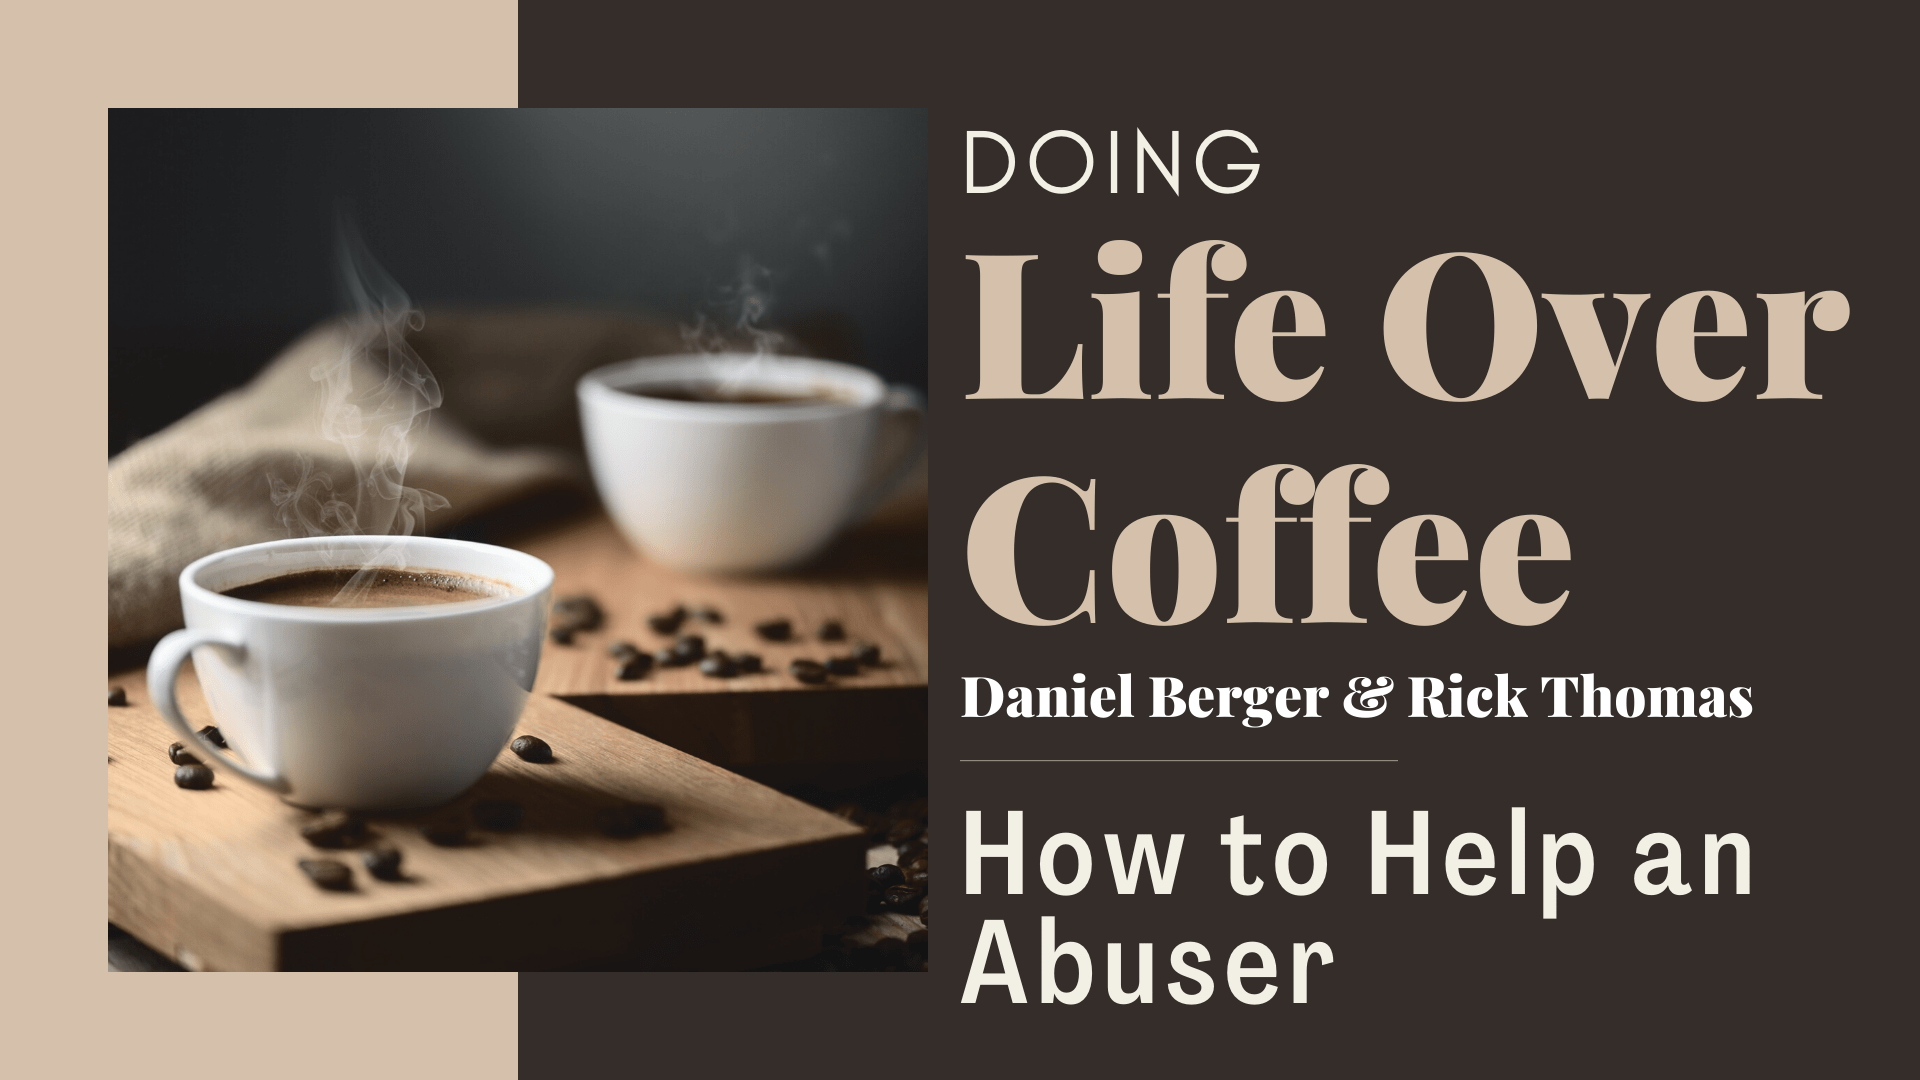 How to Help an Abuser